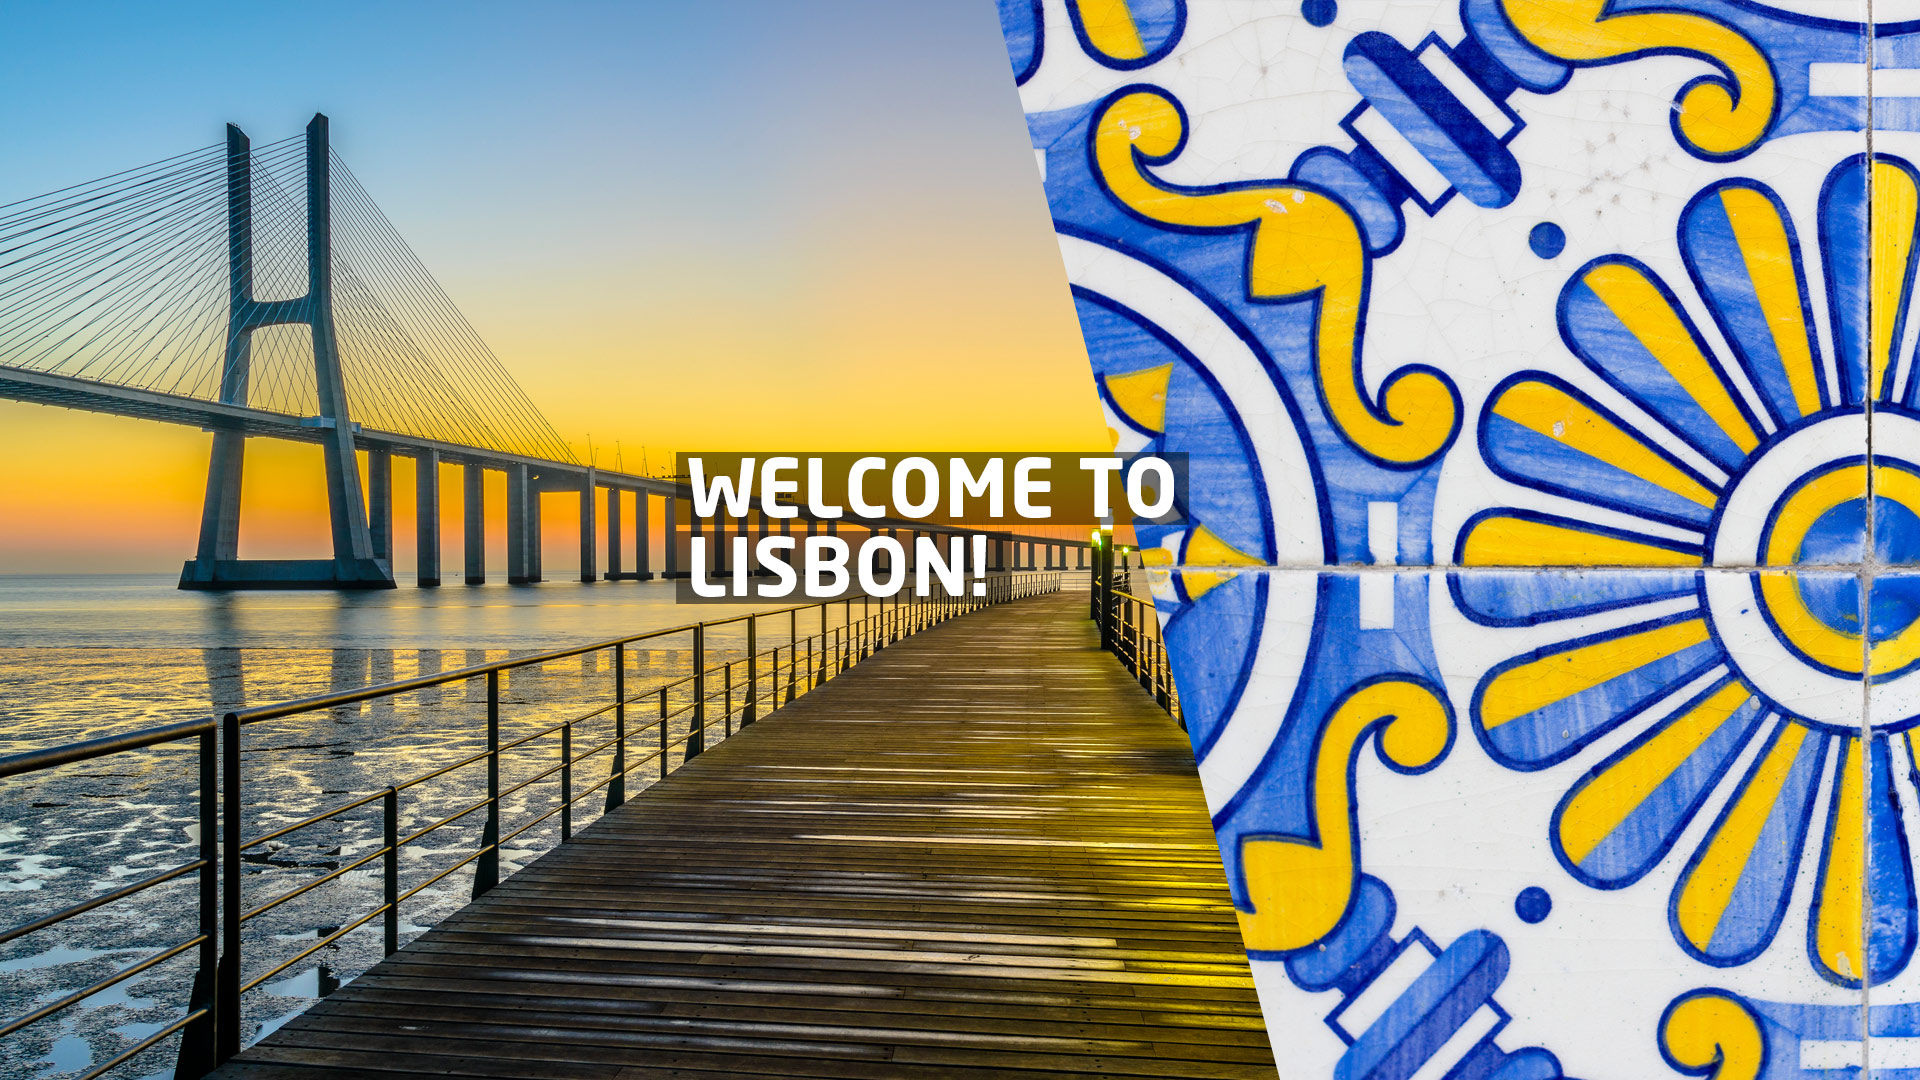 Welcome to Lisbon!